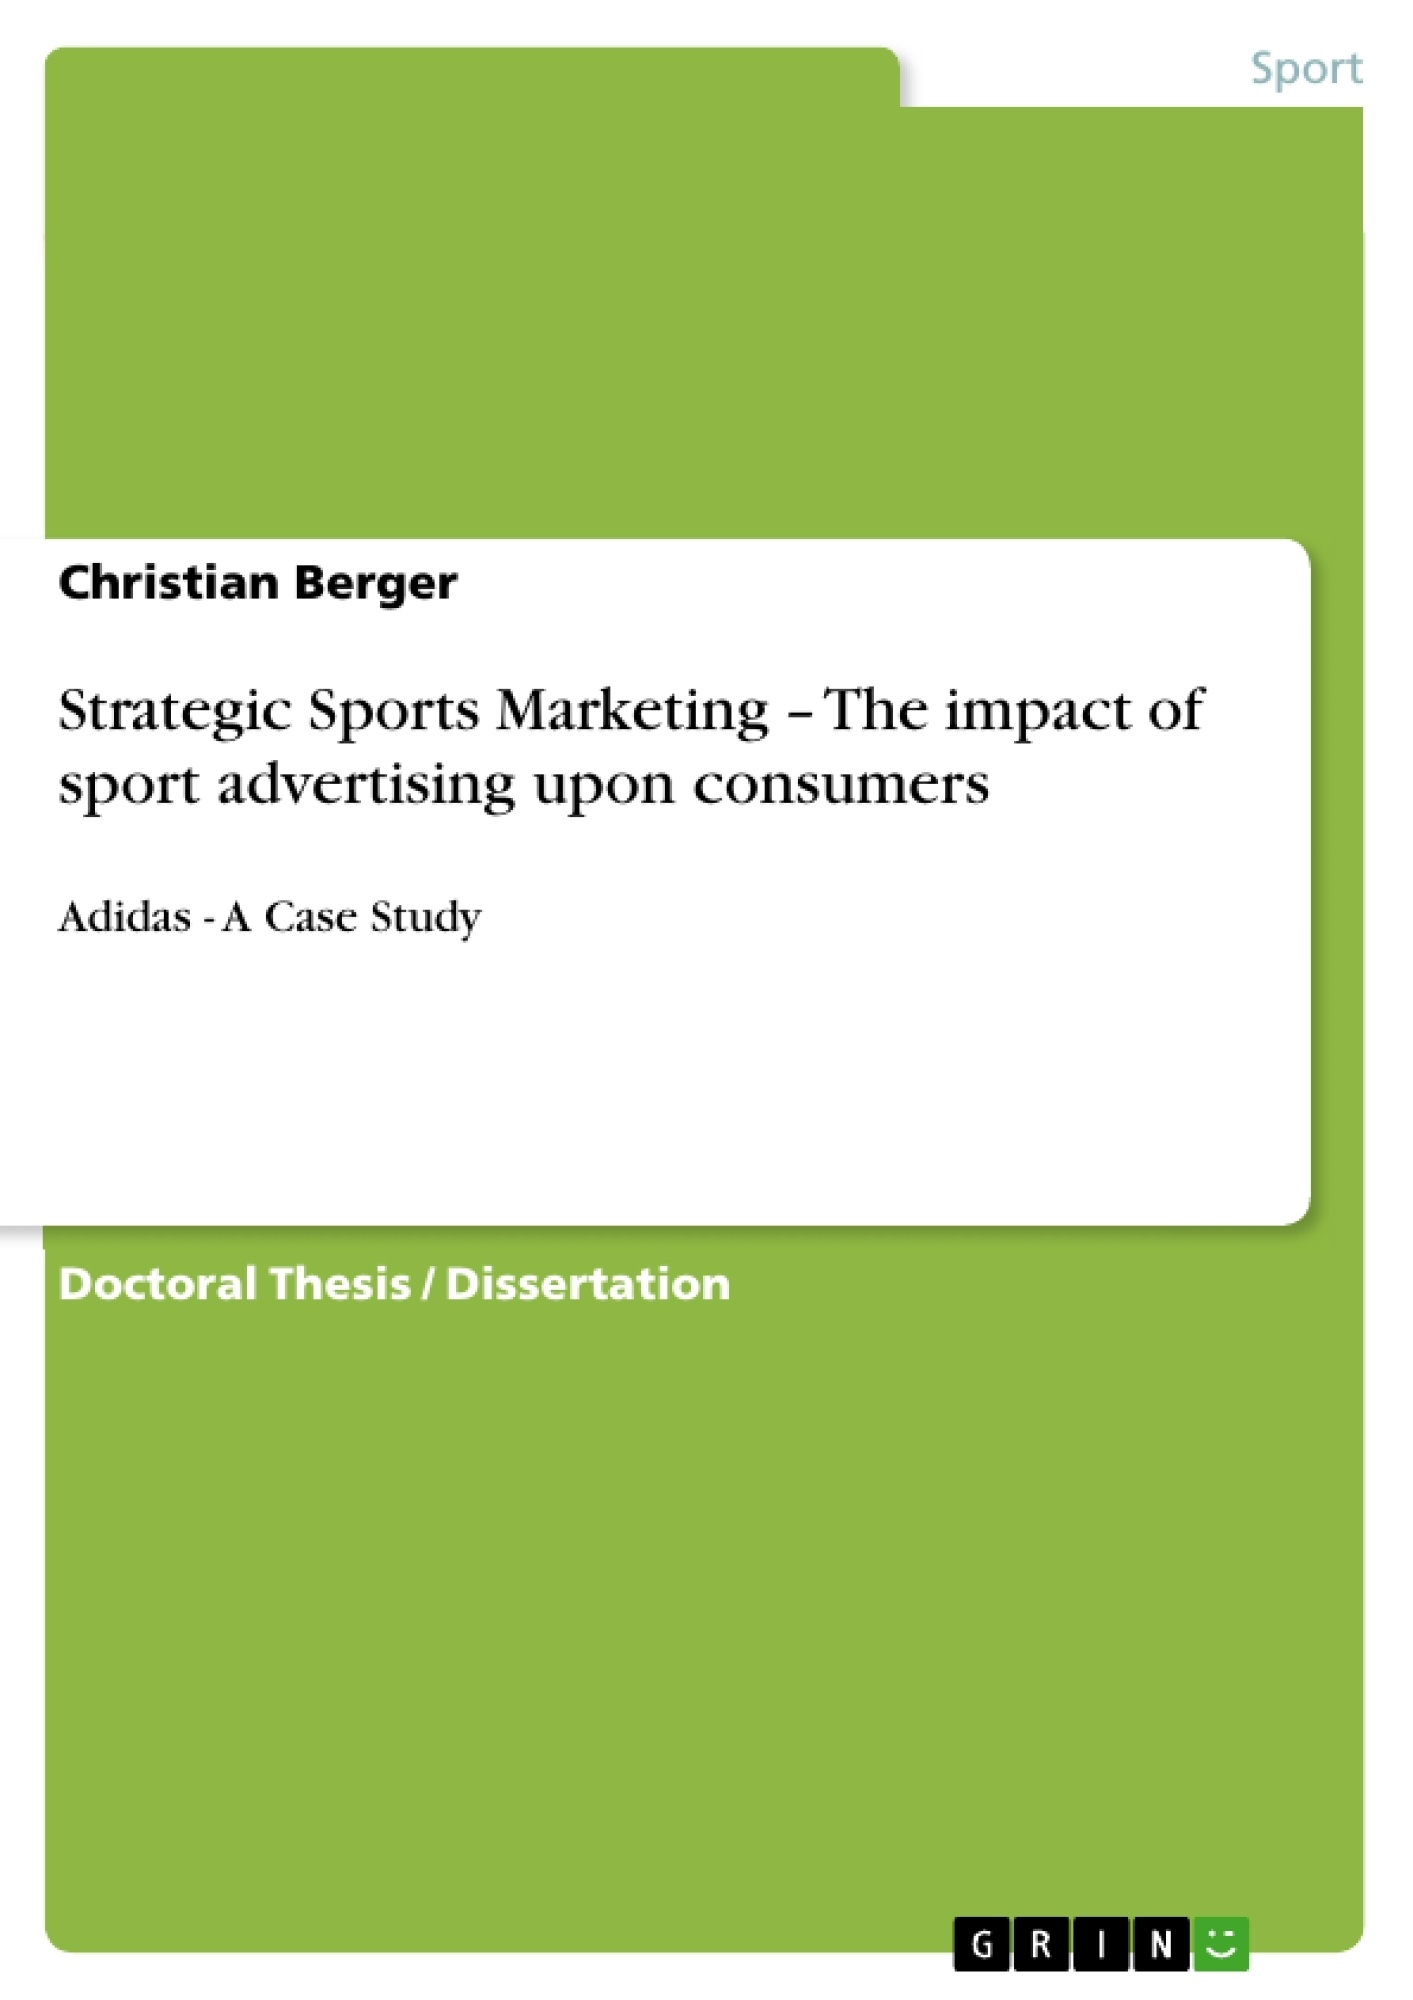 master thesis sports marketing A thesis submitted to the faculty of master of tourism administration to examine the subject of sports marketing on the world wide web.